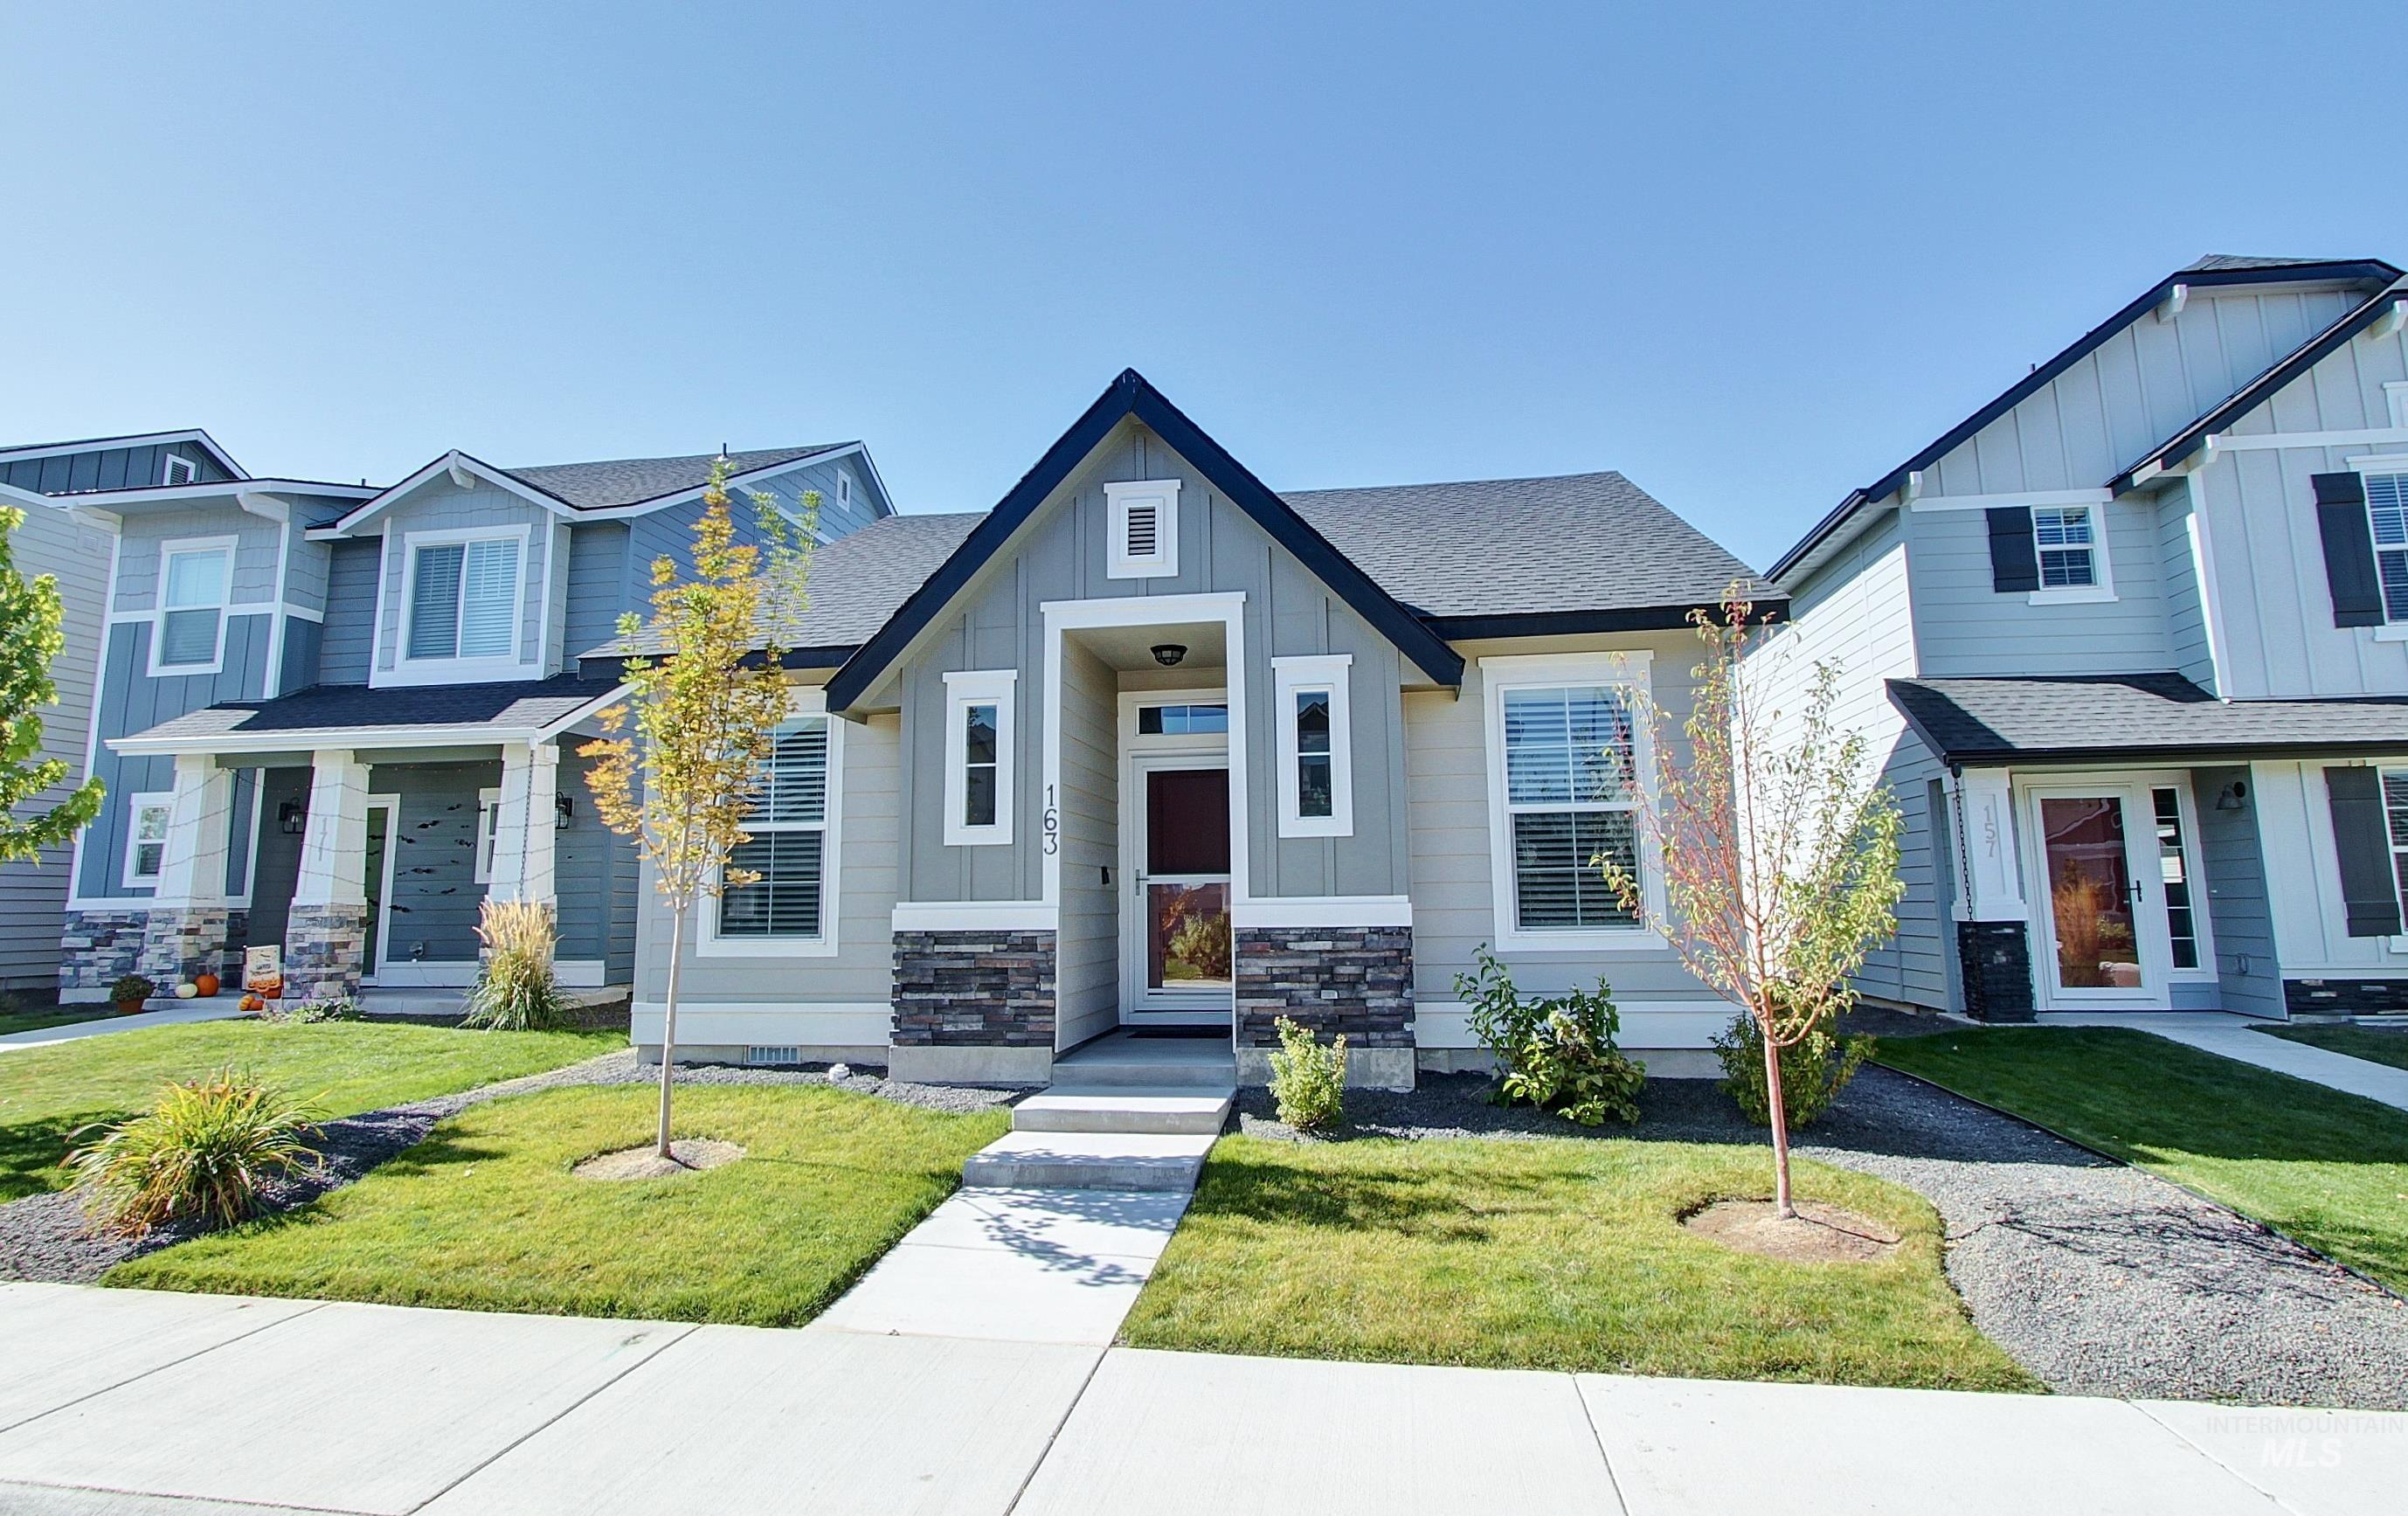 Photo of 163 Riggs Spring Ave Meridian ID 83642